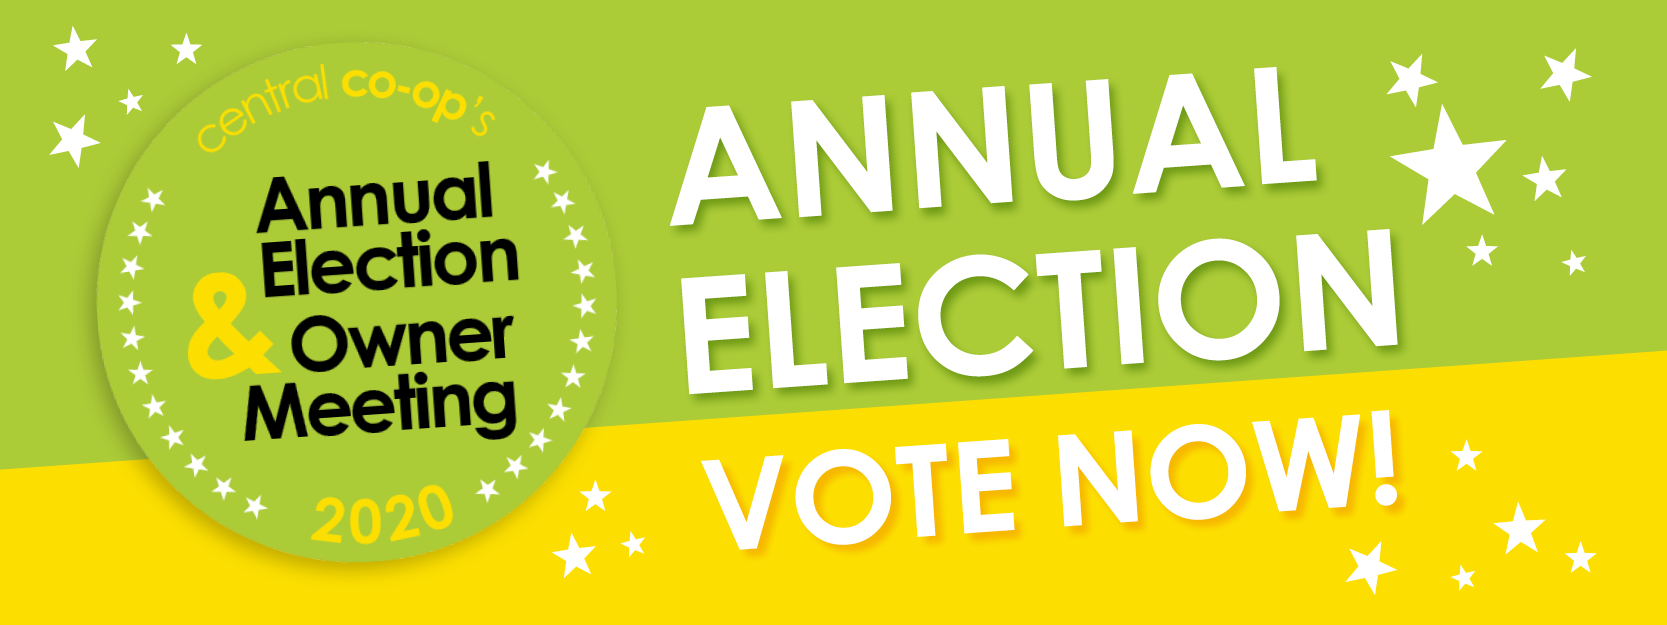 Central Co-op's Annual Election is October 5 - 18! Vote Online Today!